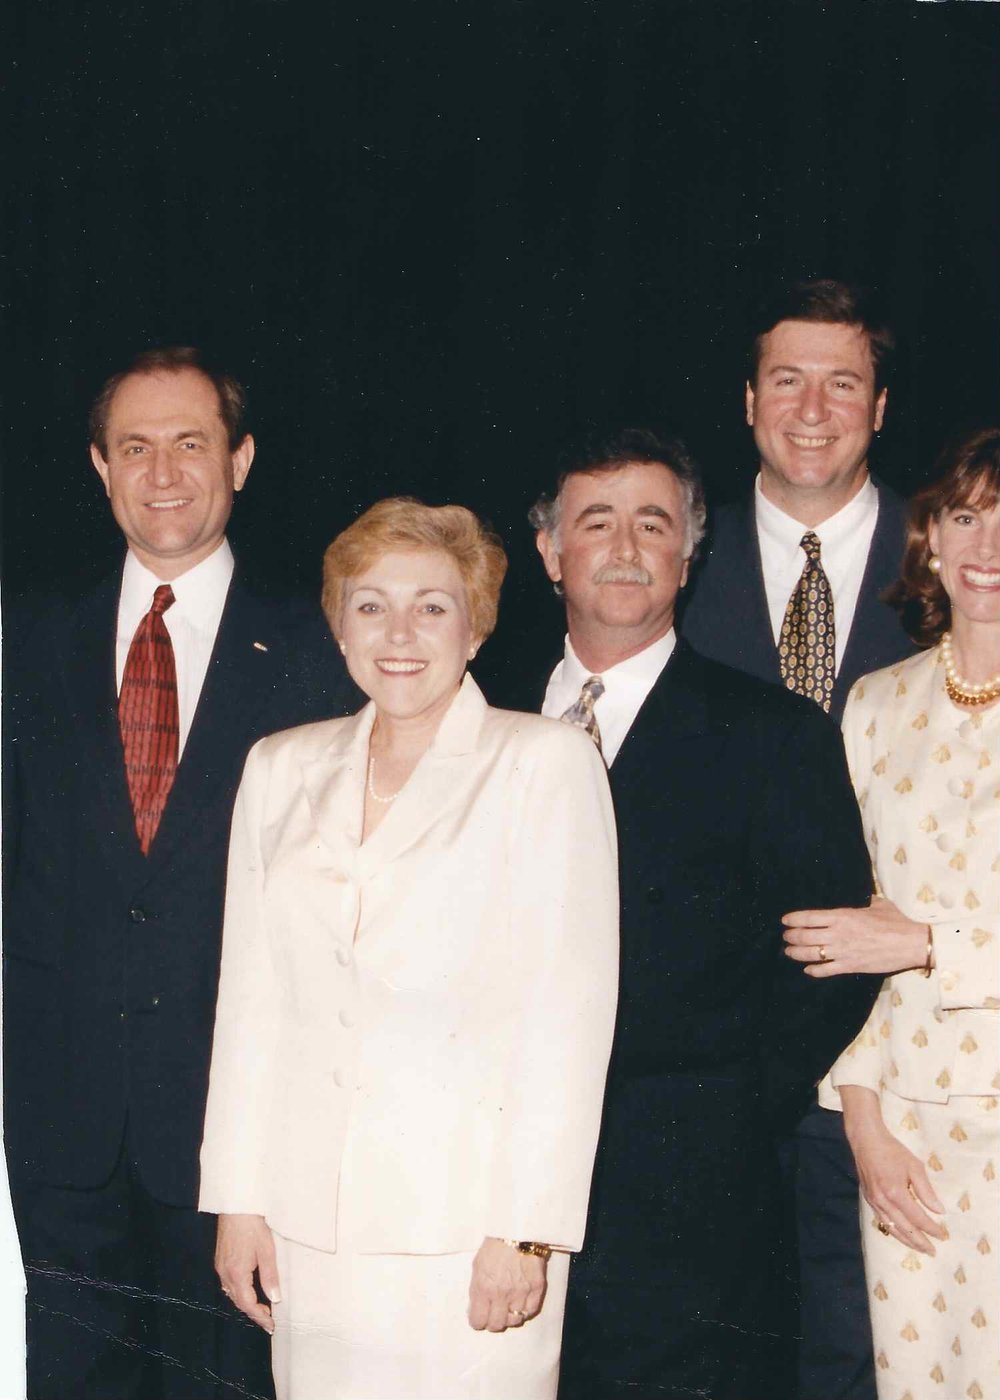 This one is from the time I had a specialty store in ladies ready to wear. I am flanked by outgoing Governor George Allen and wife   Susan, and incoming Governor Jim Gilmore and wife Roxanne. I felt fortunate to serve a number of elected officials and spouses.